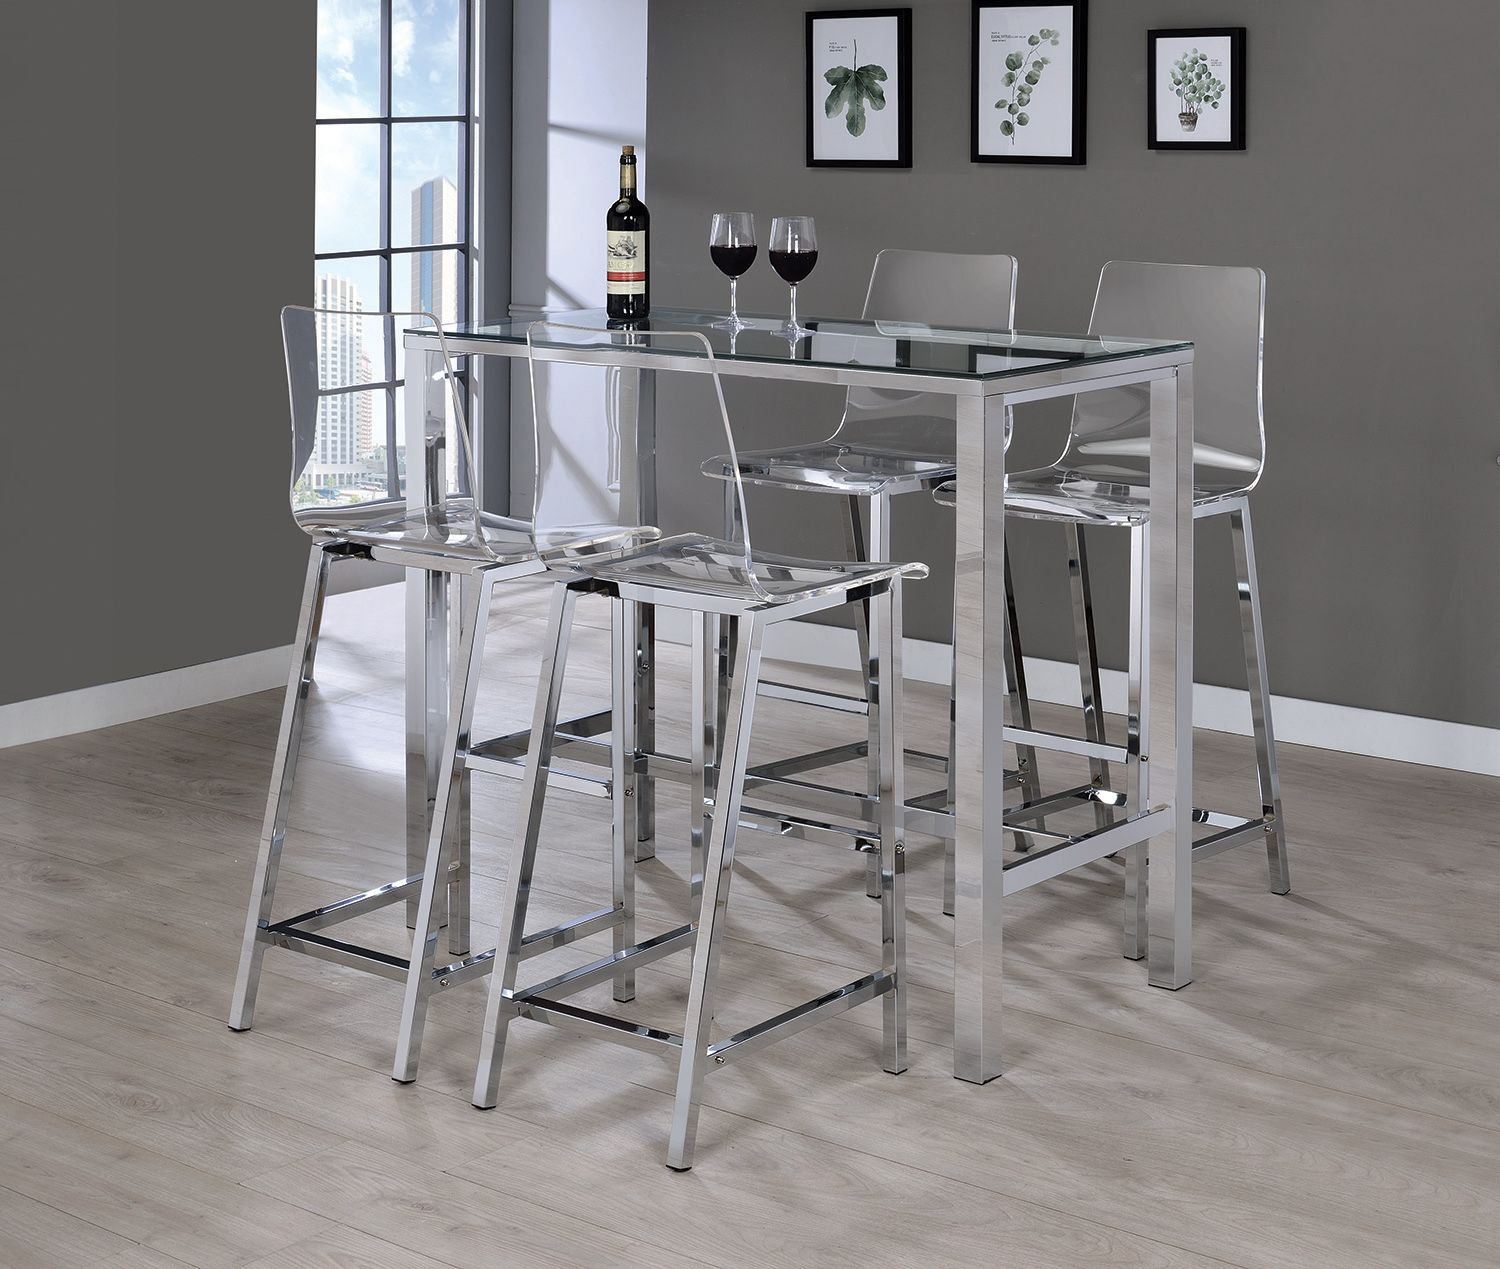 Ana Clear Acrylic Bar Stool Las Vegas Furniture Store Modern